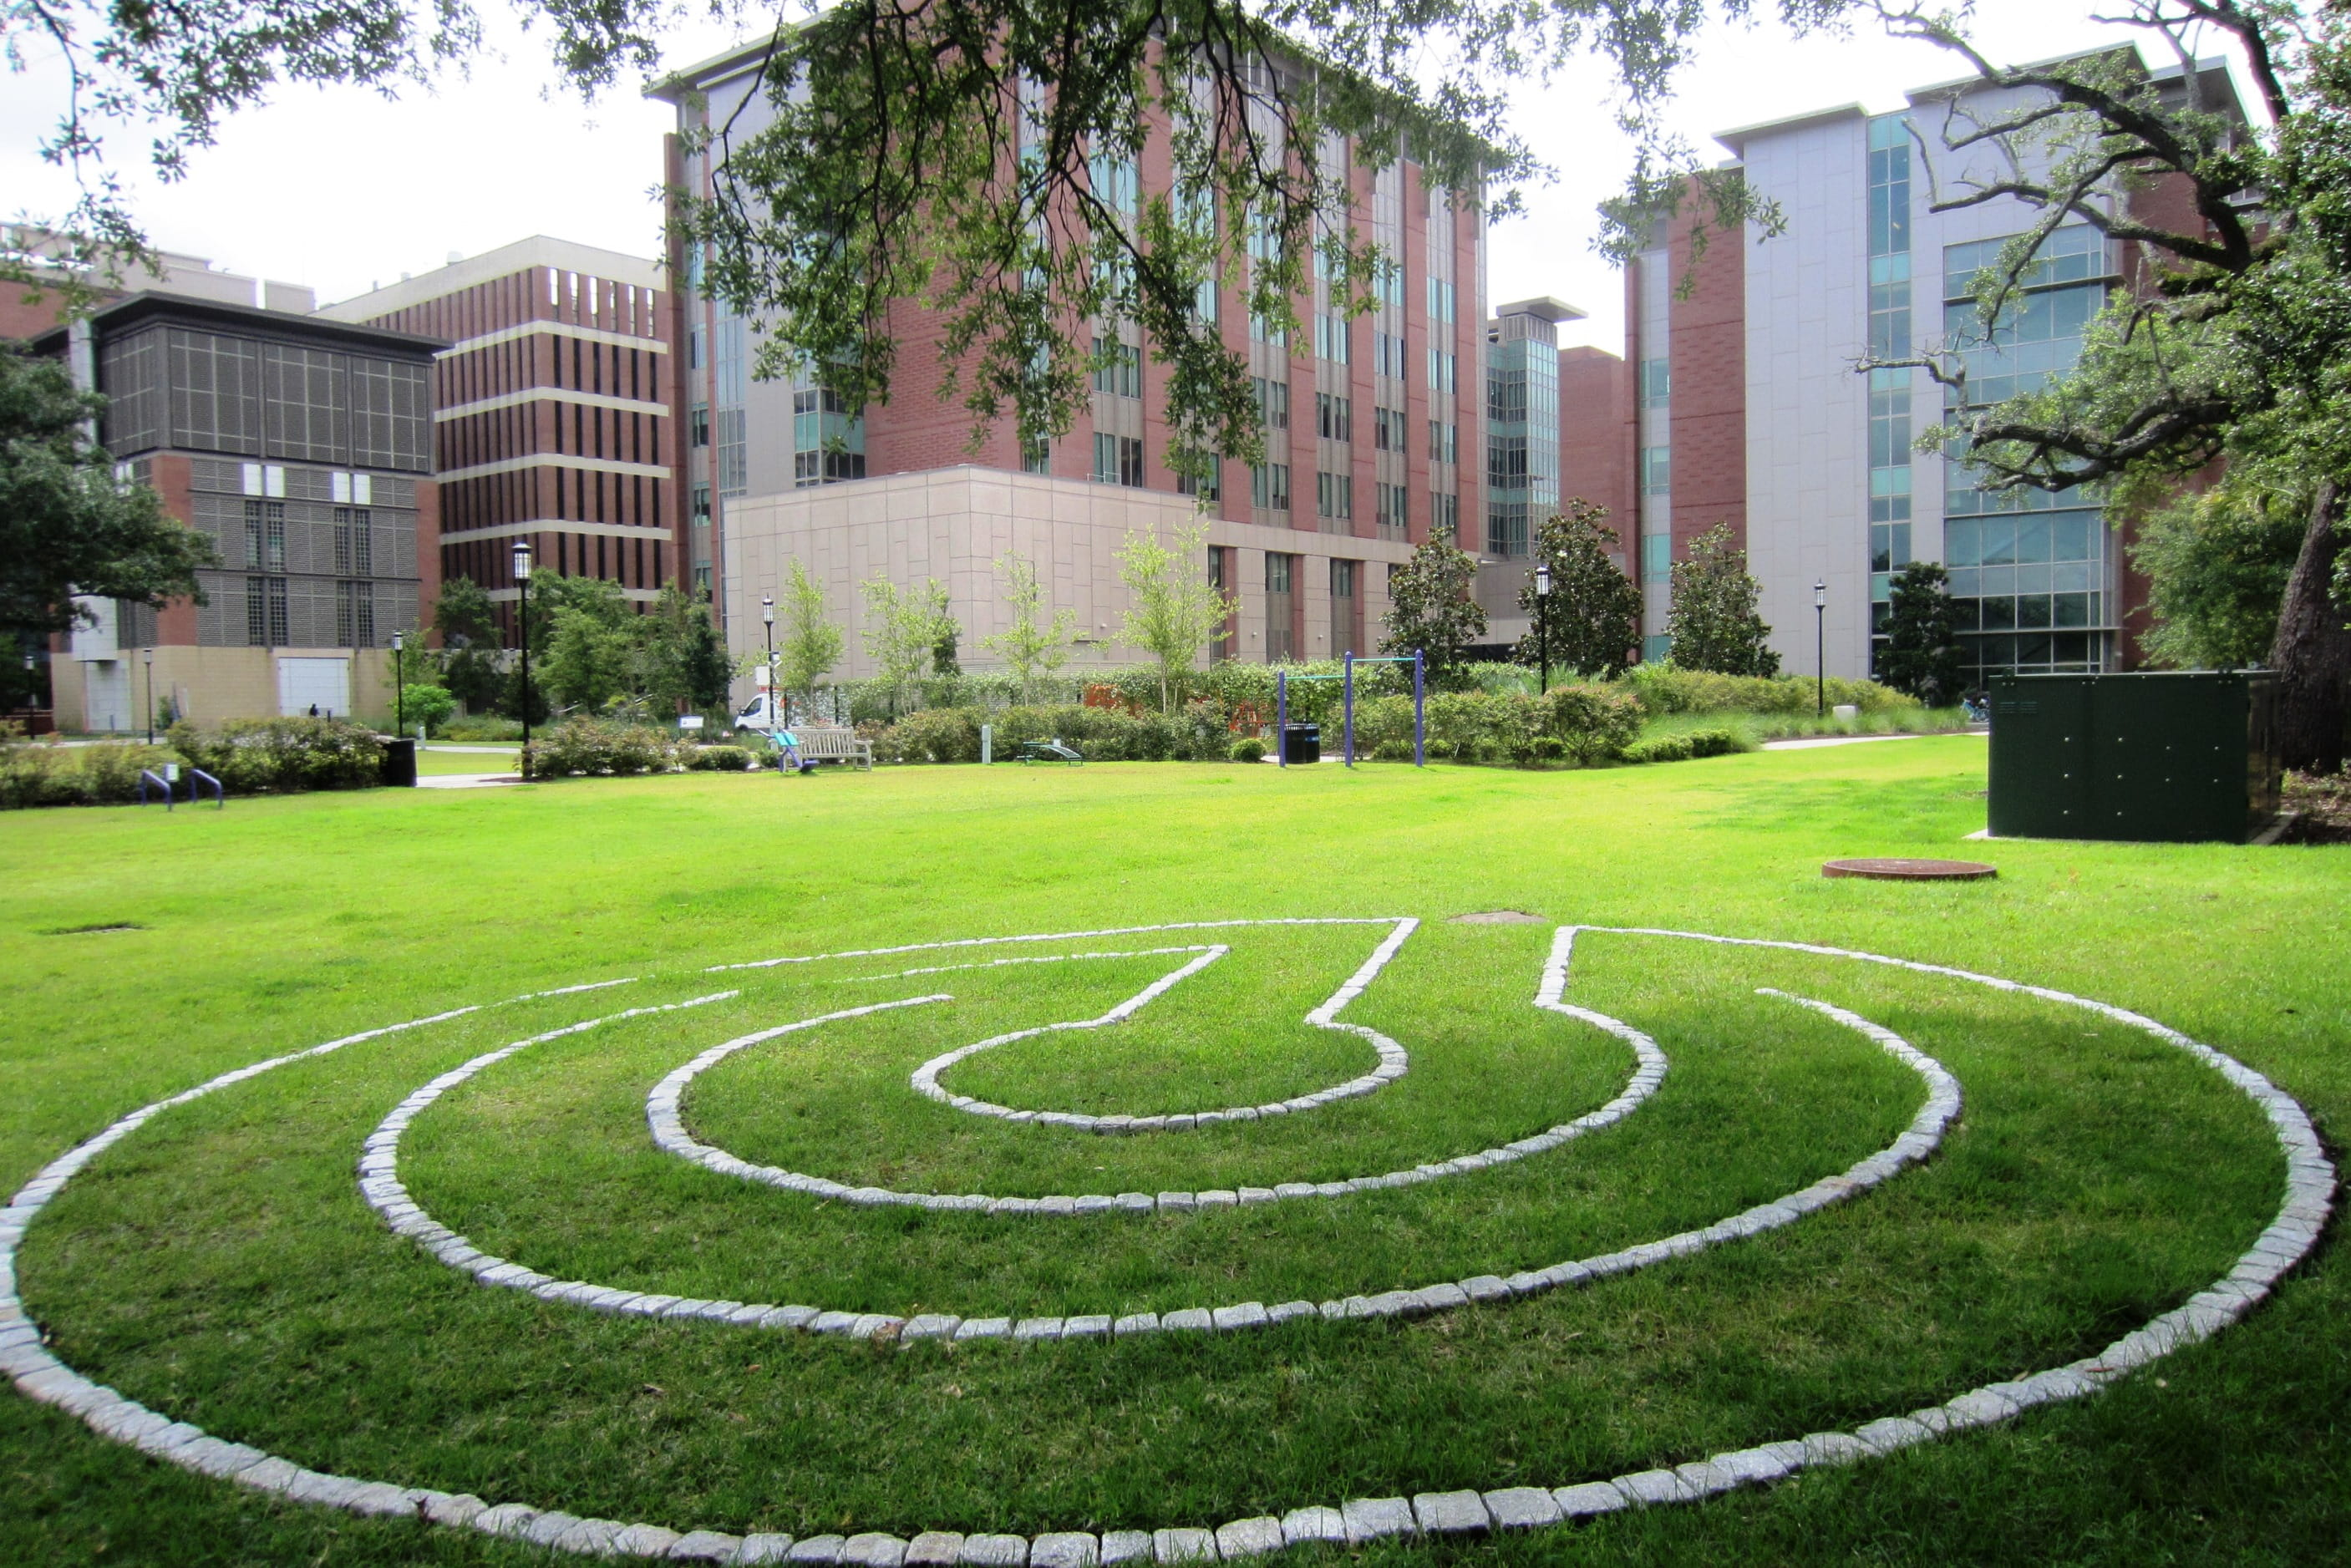 Meditation Labyrinth at the Fitness Park